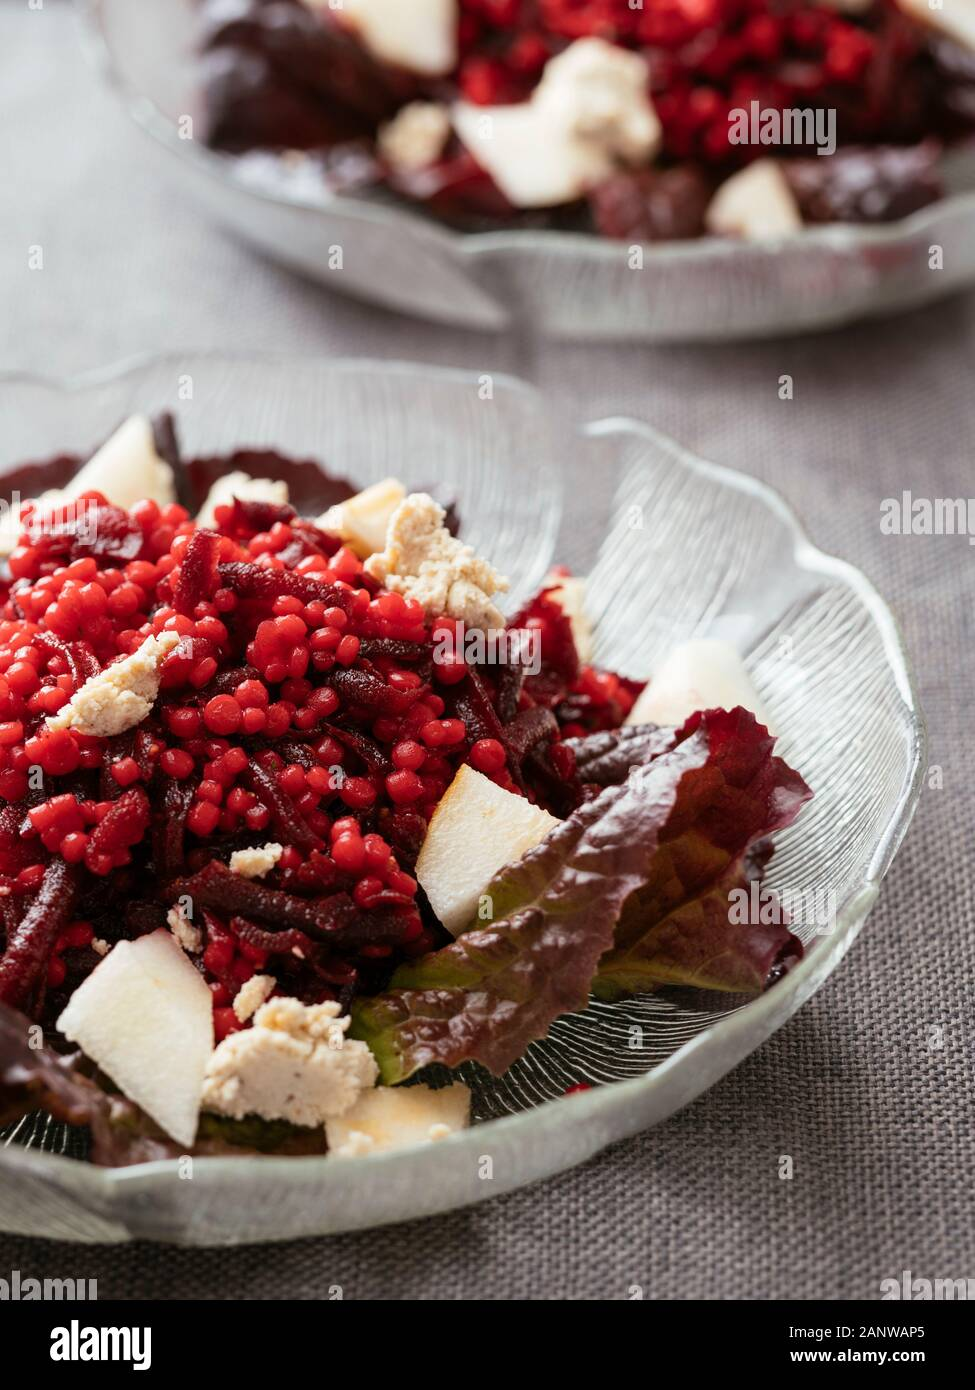 Shoestring Beets with Pearl Couscous and Pears Stock Photo